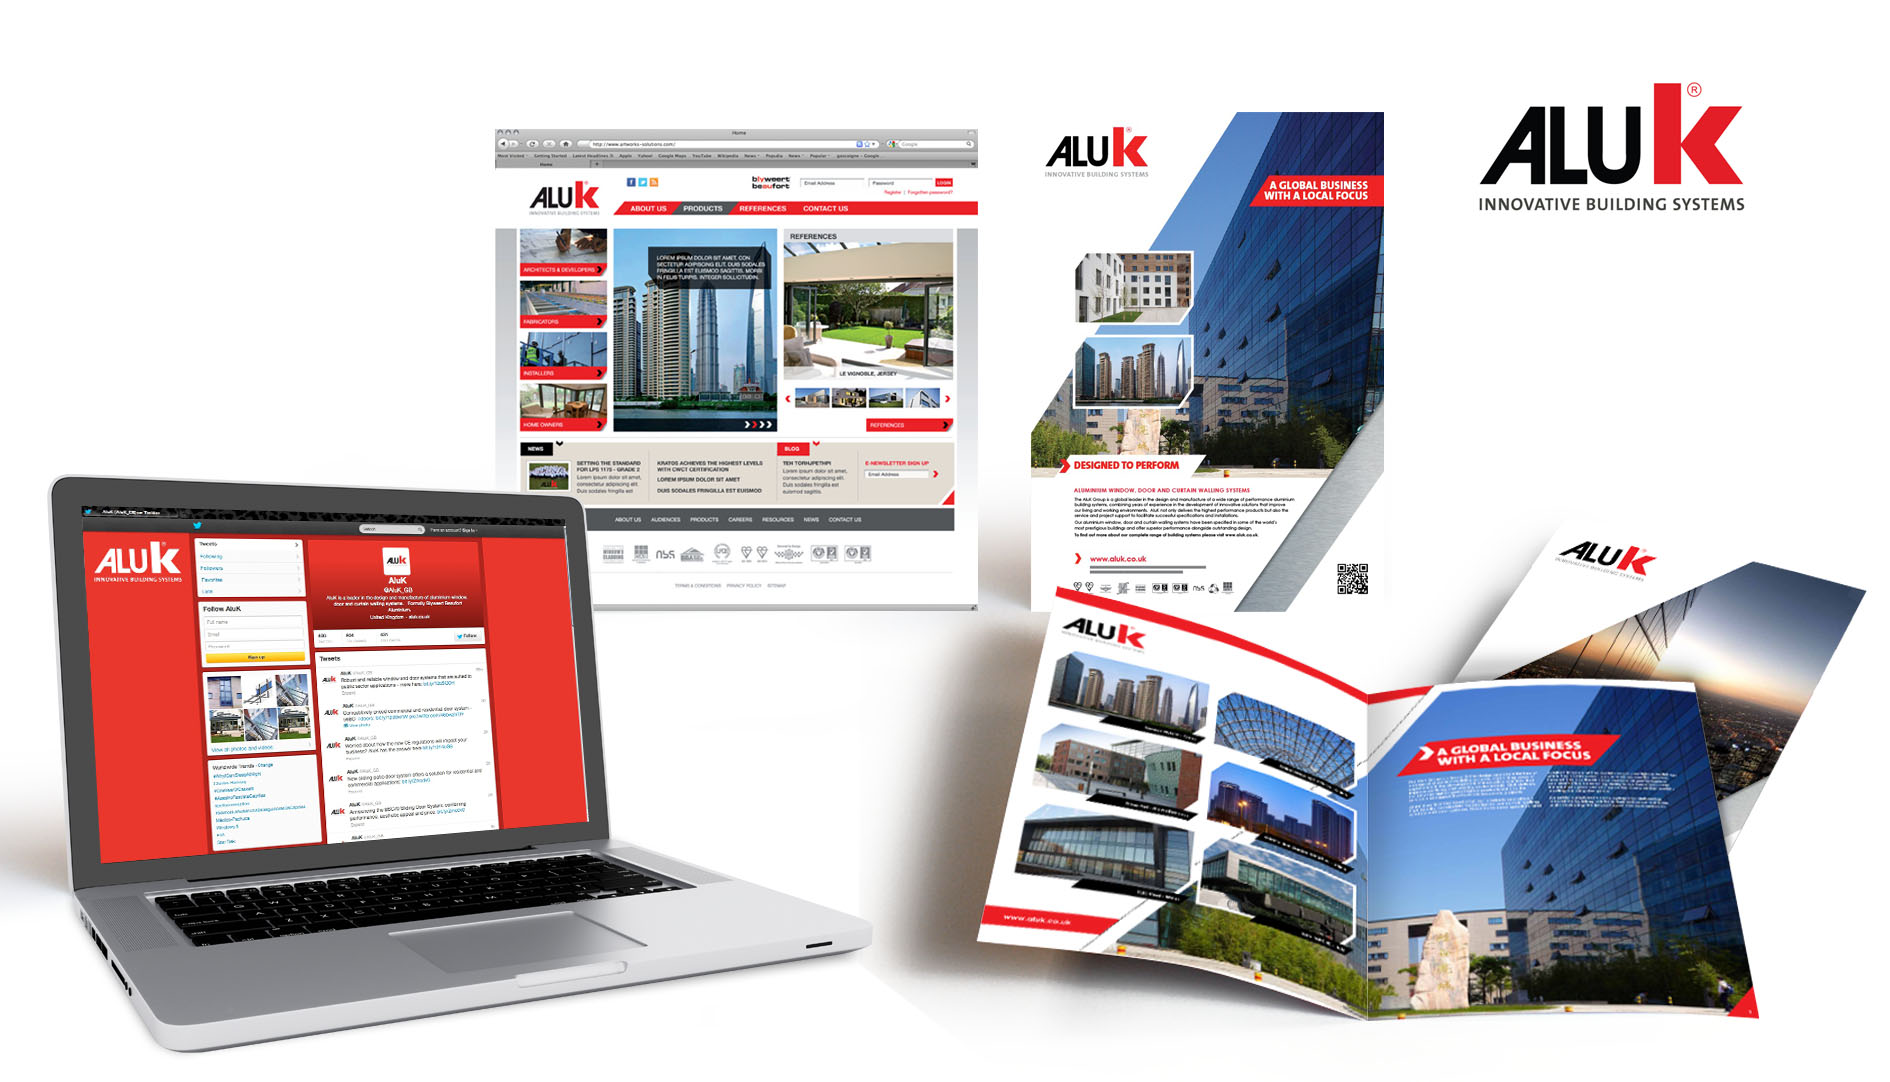 AluK Branding and Marketing